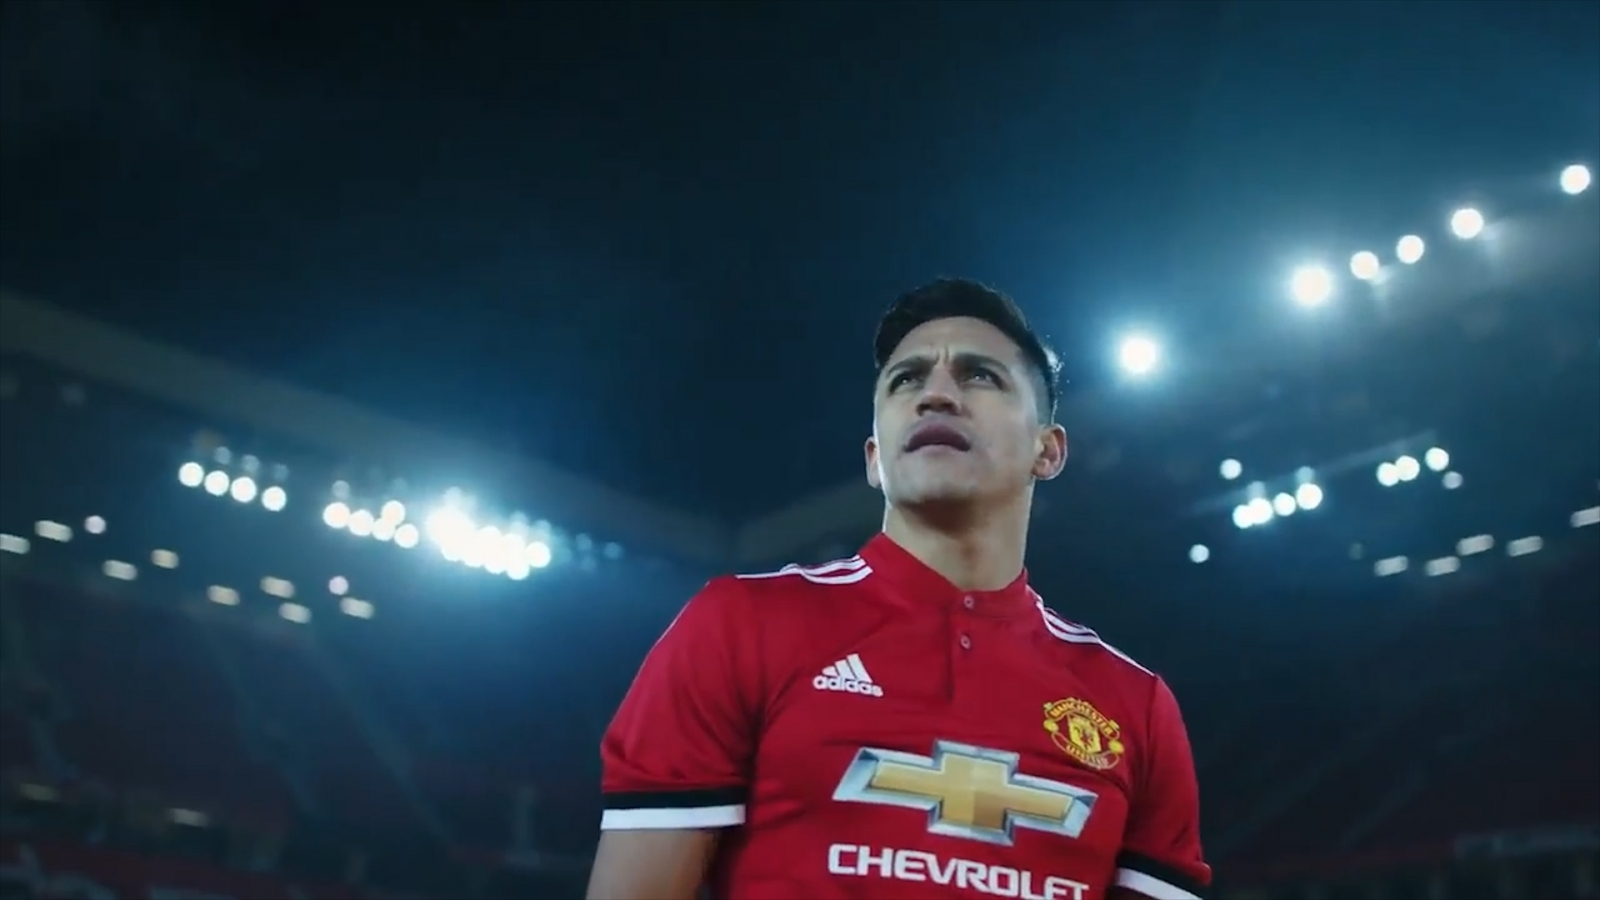 Alexis Sanchez Hd Desktop Wallpapers At Manchester United